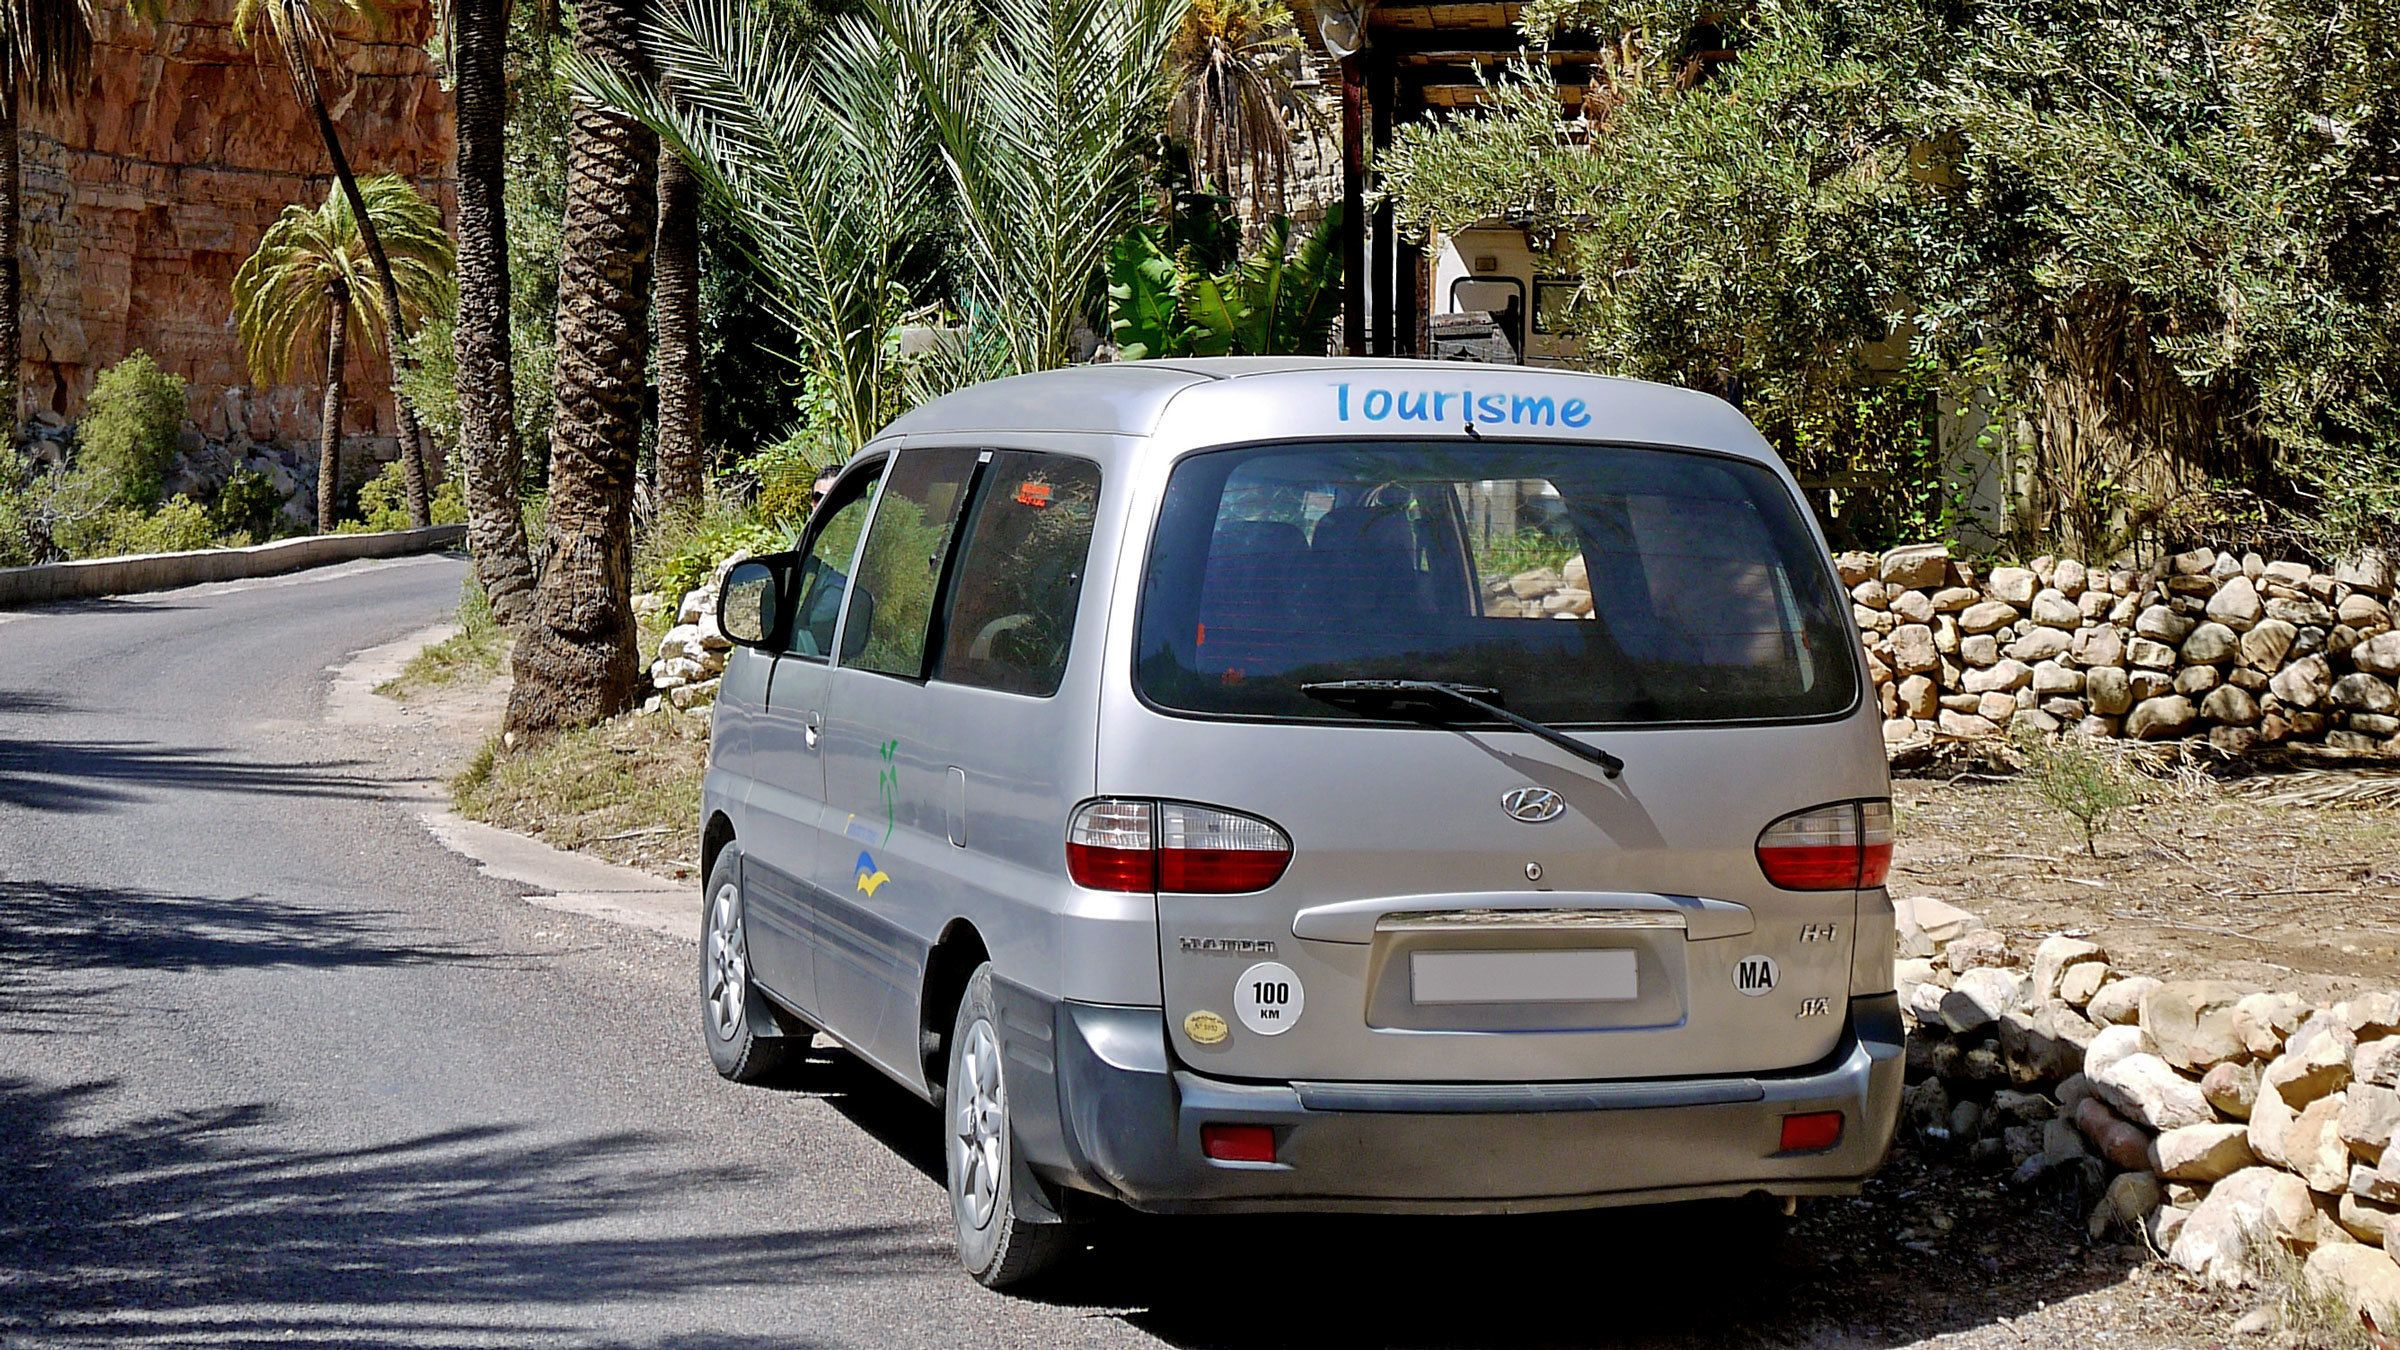 Tour van on a street lined with palm trees in Paradise Valley